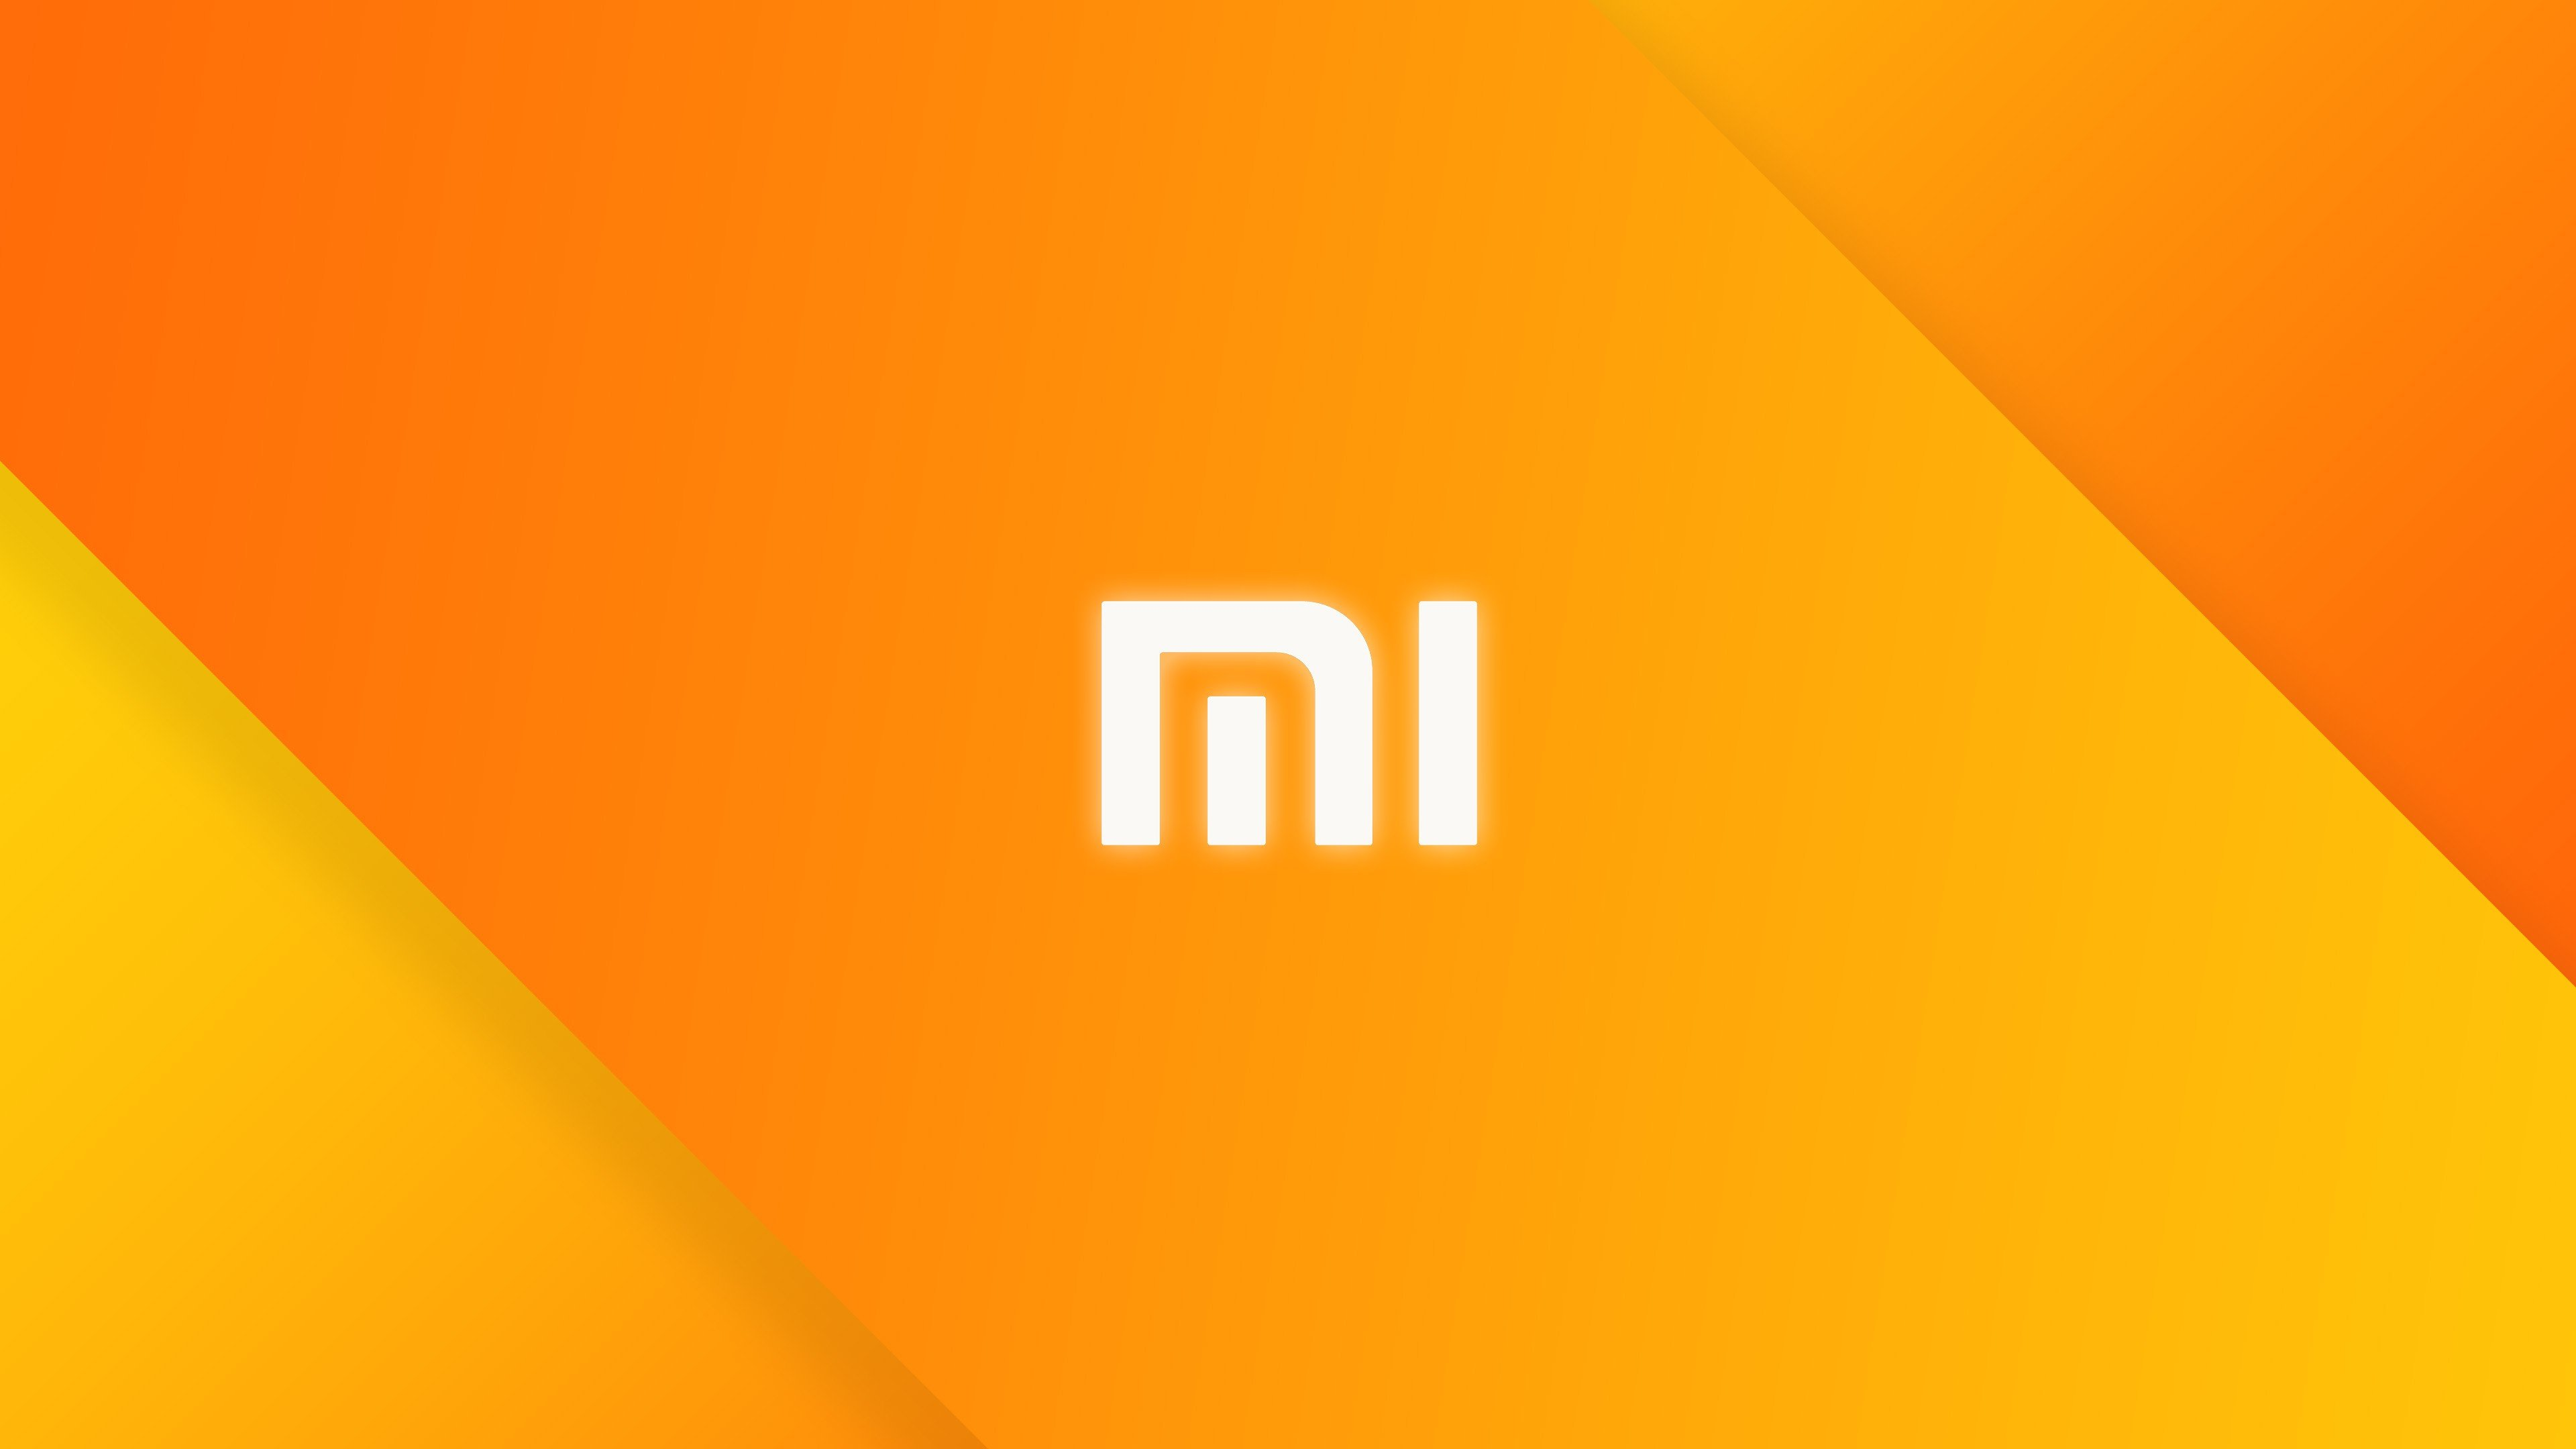 Xiaomi Wallpapers Hd: Xiaomi, Brand, Yellow, Minimalism HD Wallpapers / Desktop